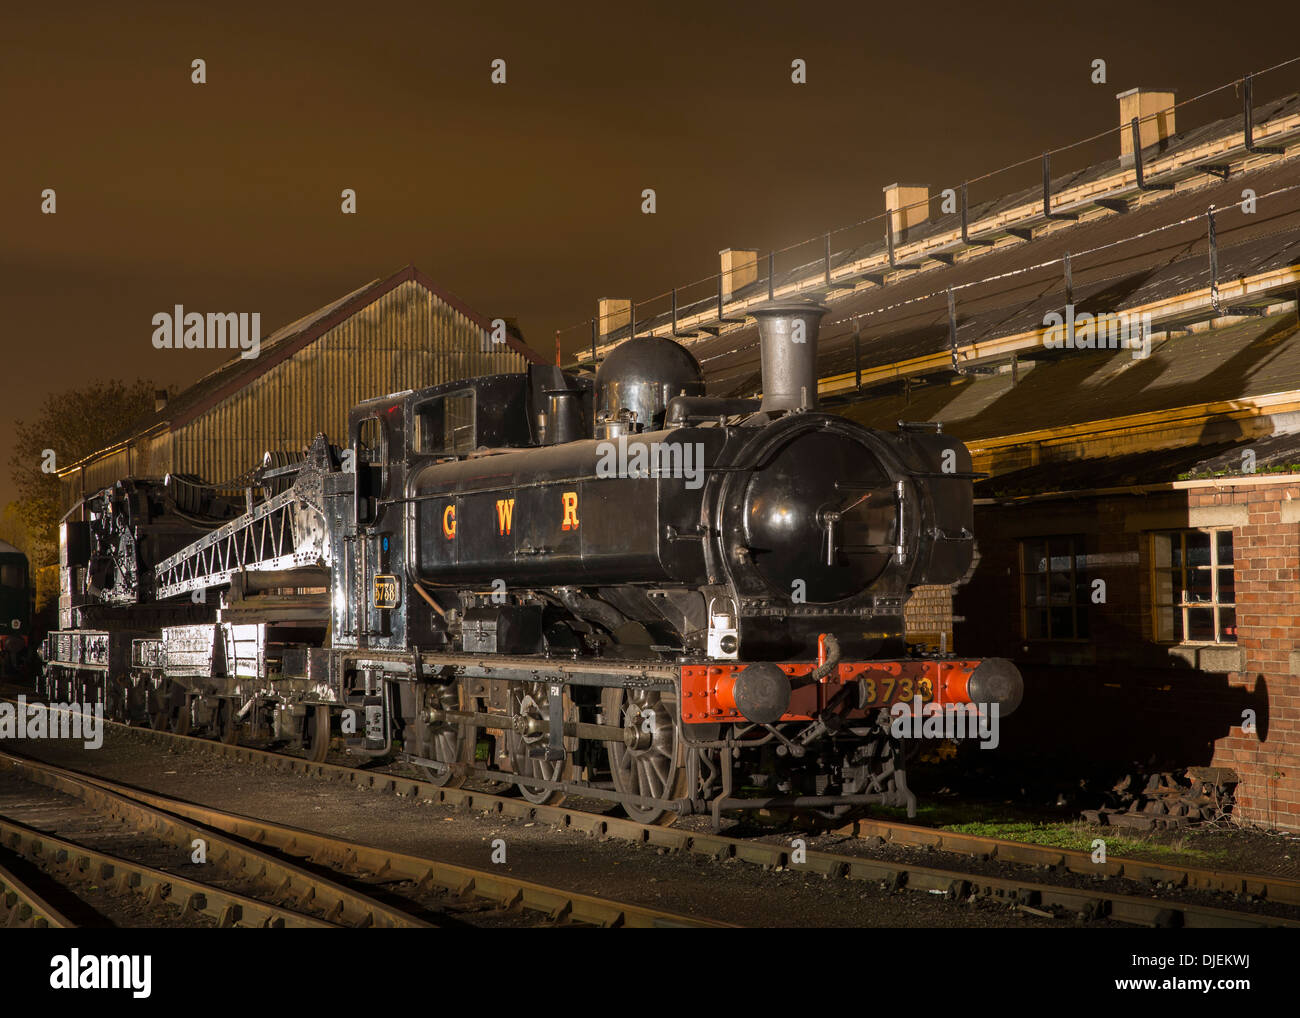 Great Western Railway (GWR) 5700 Class 0-6-0PT preserved pannier tank steam locomotive on a breakdown train at night - Stock Image